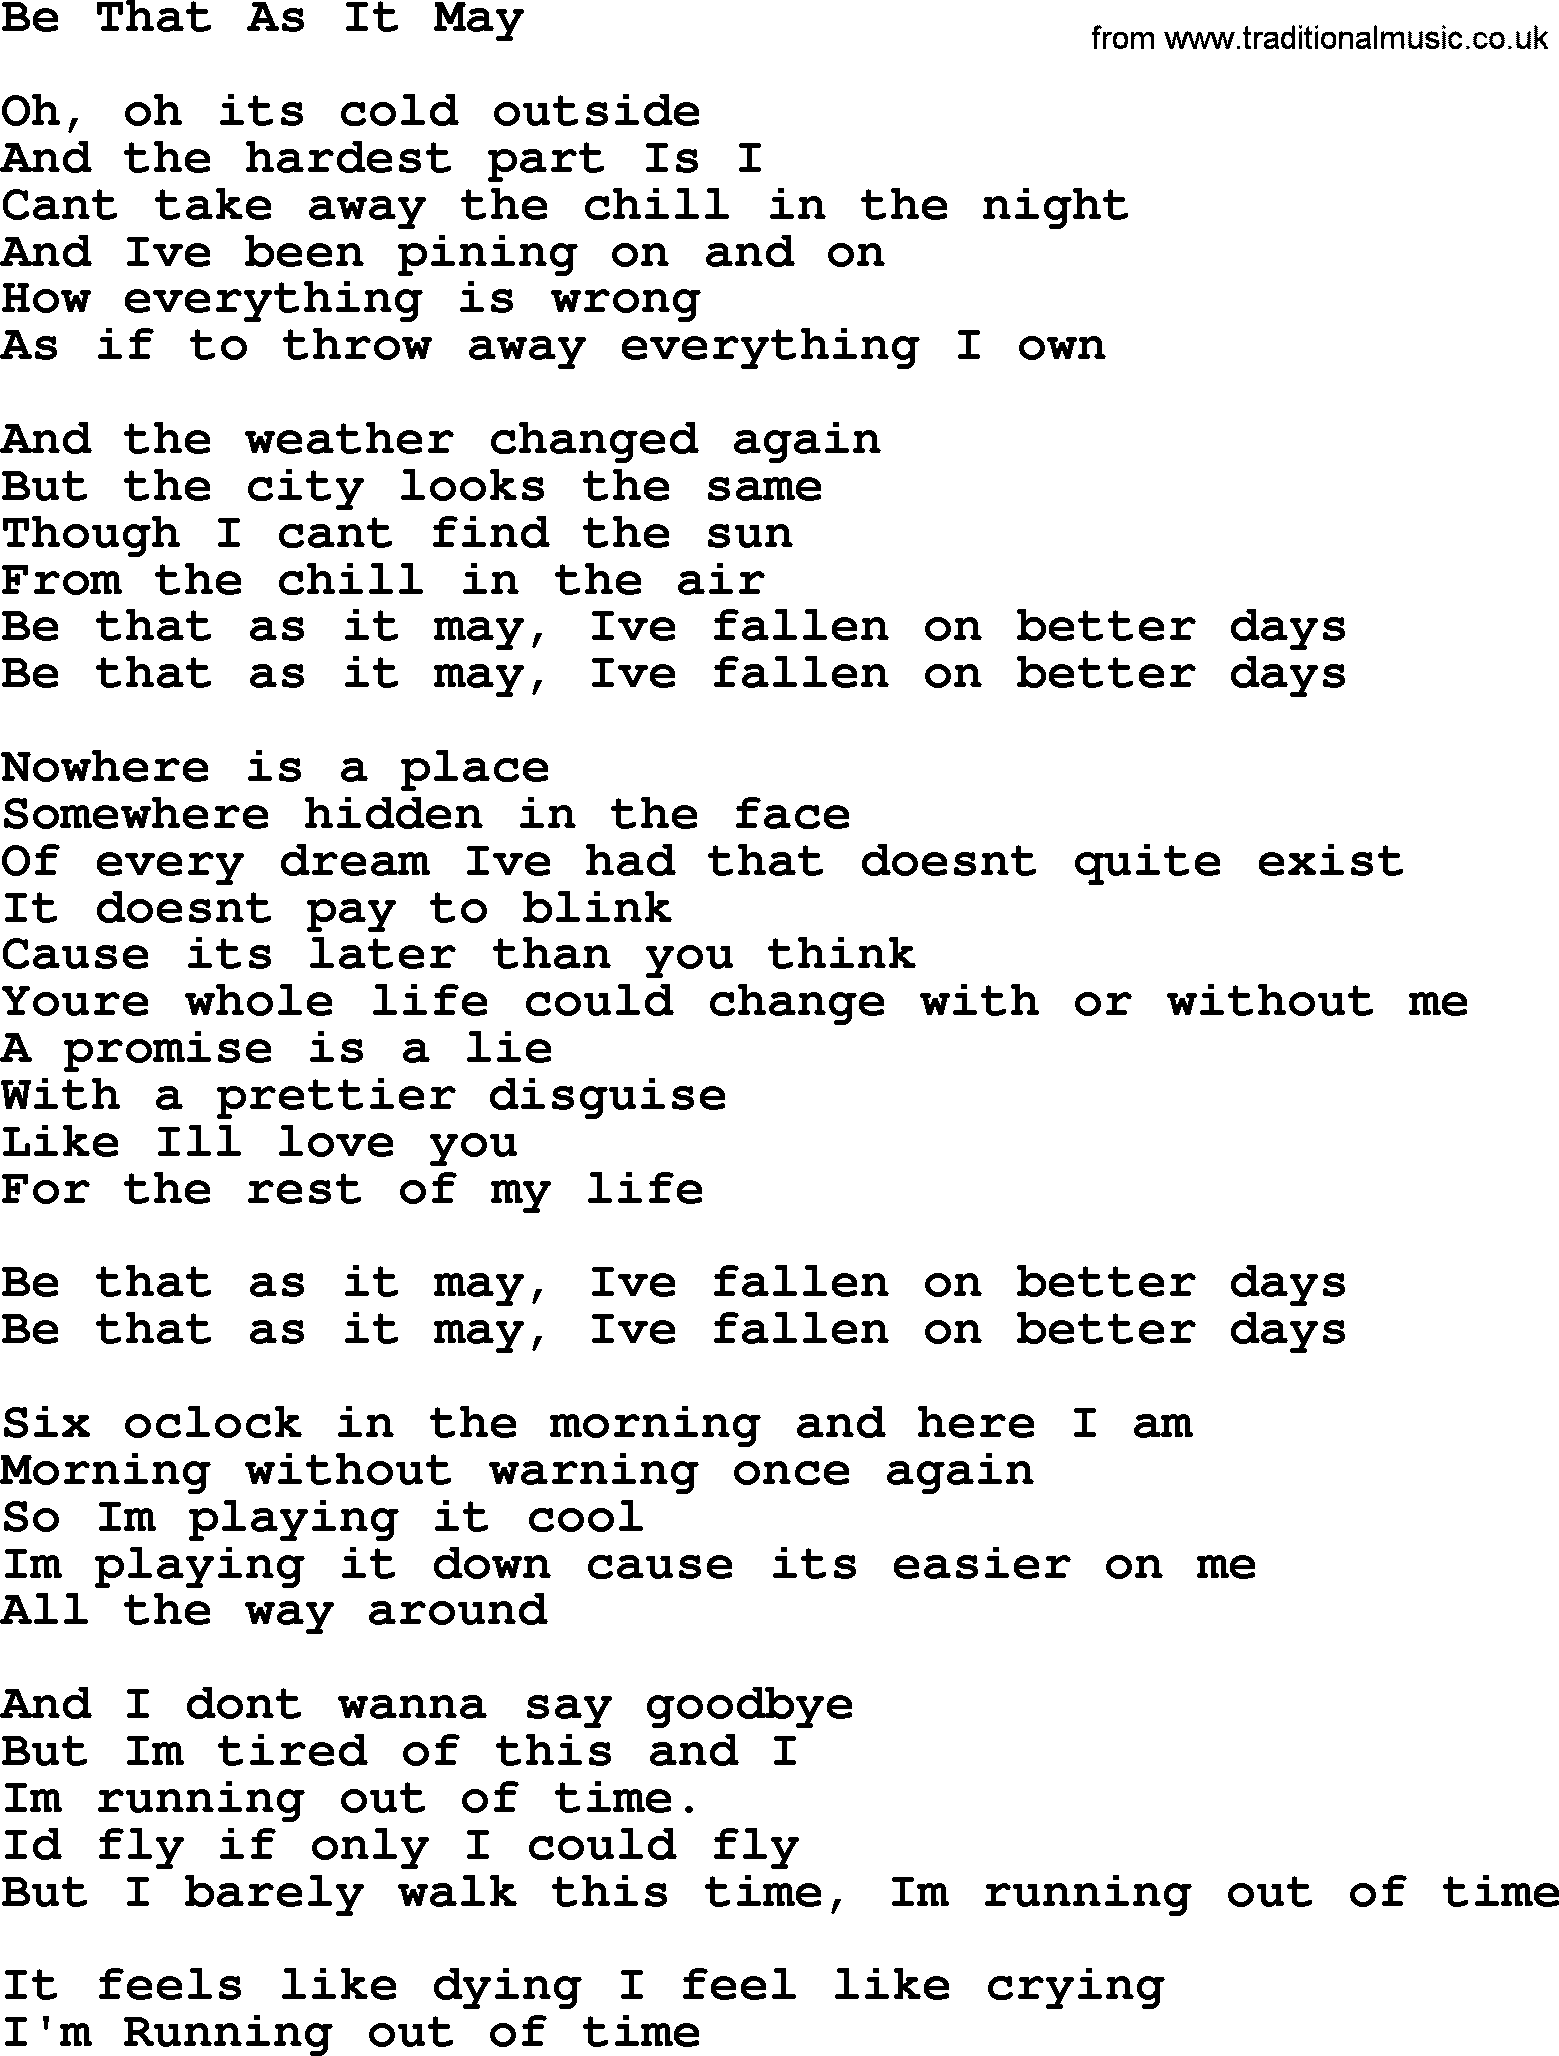 Willie Nelson song: Be That As It May lyrics